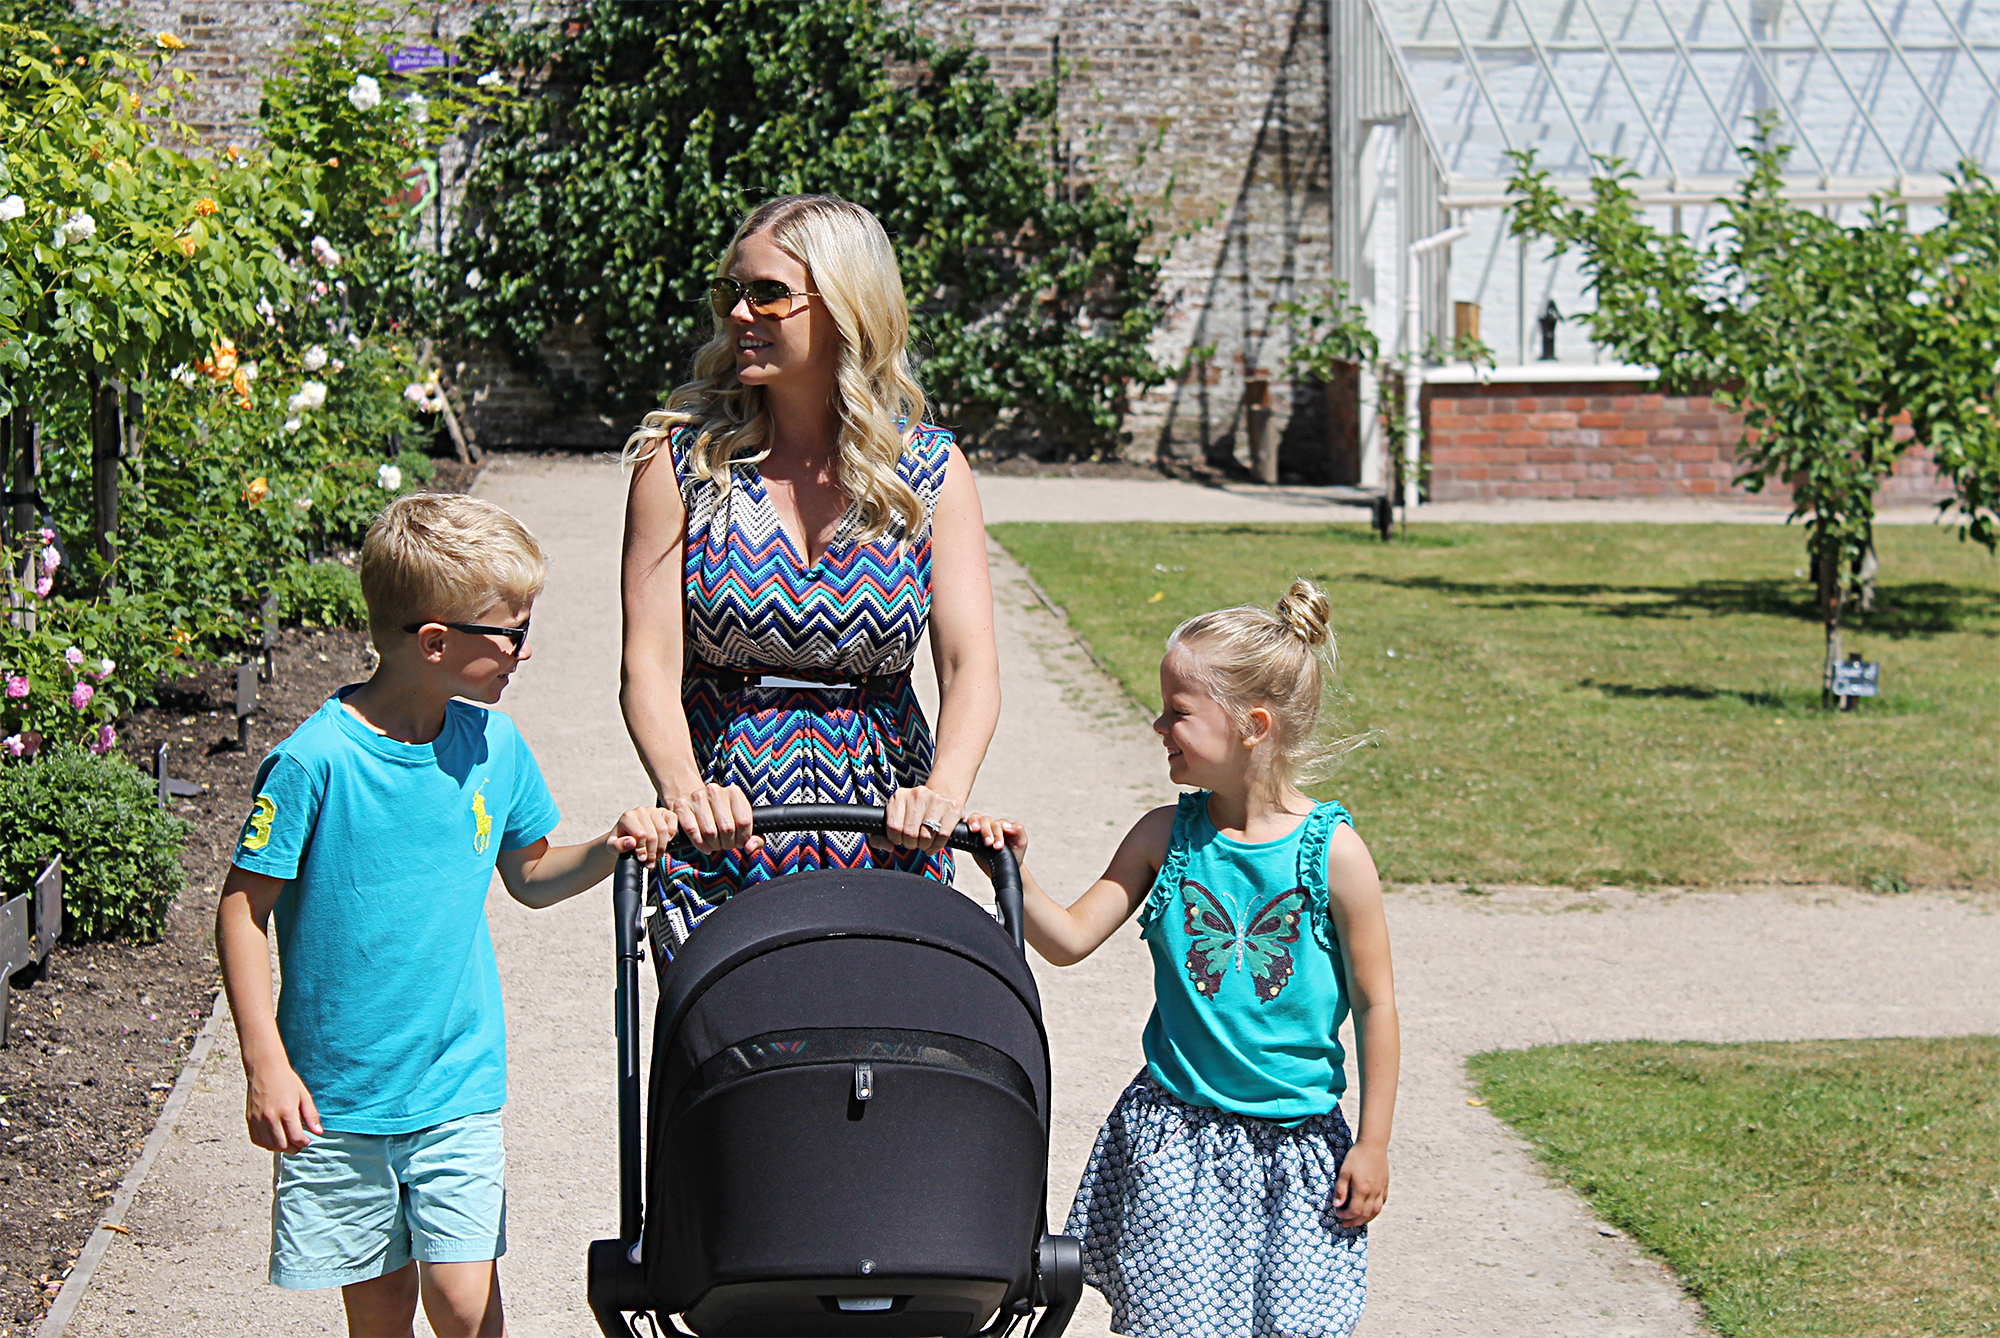 A woman wearing a patterned dress is walking in a park with 2 children walking beside her and pushing a black pram